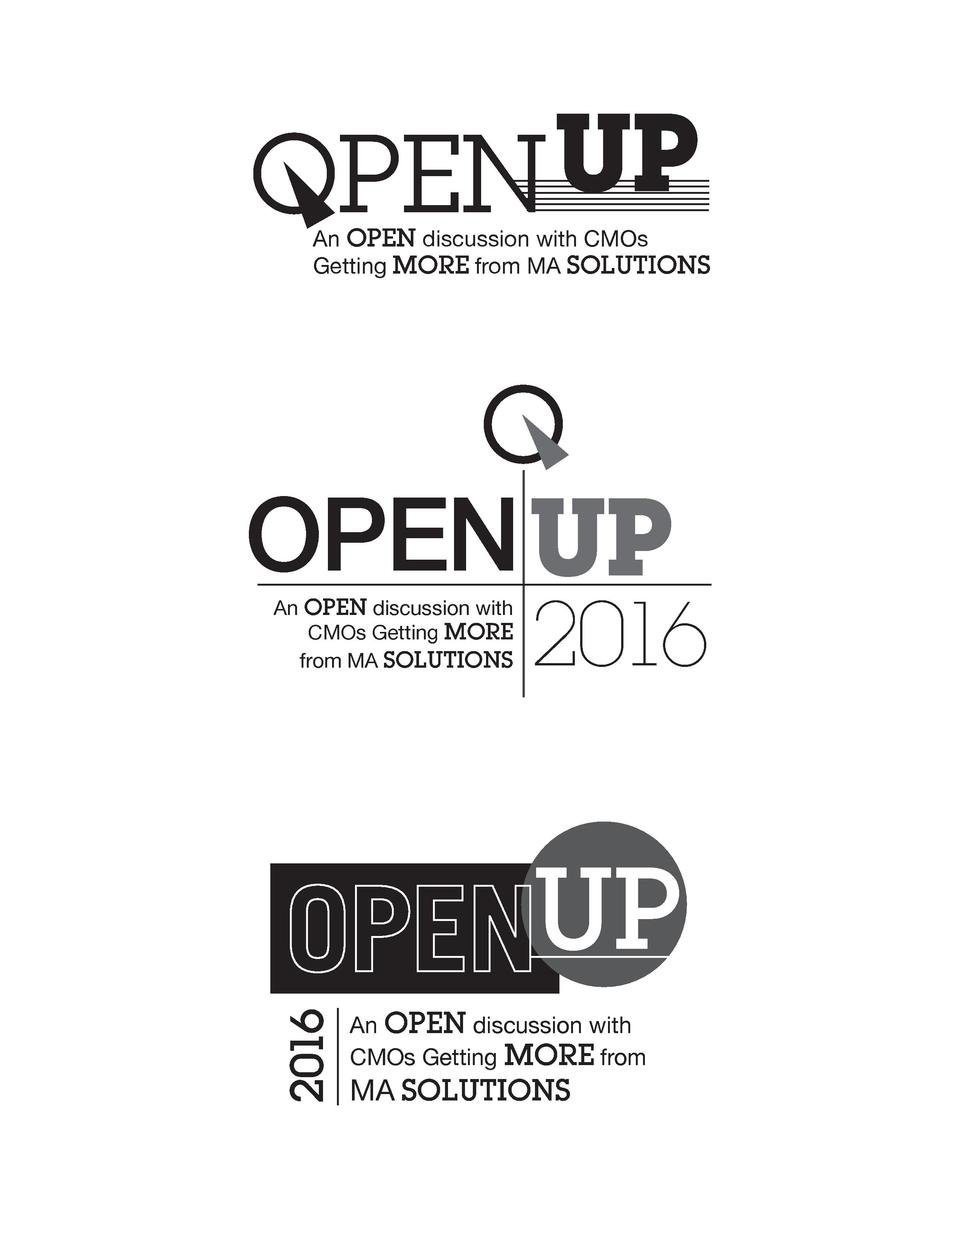 OPEN UP  An OPEN discussion with CMOs Getting MORE from MA SOLUTIONS  OPEN UP  2016  An OPEN discussion with CMOs Getting ...